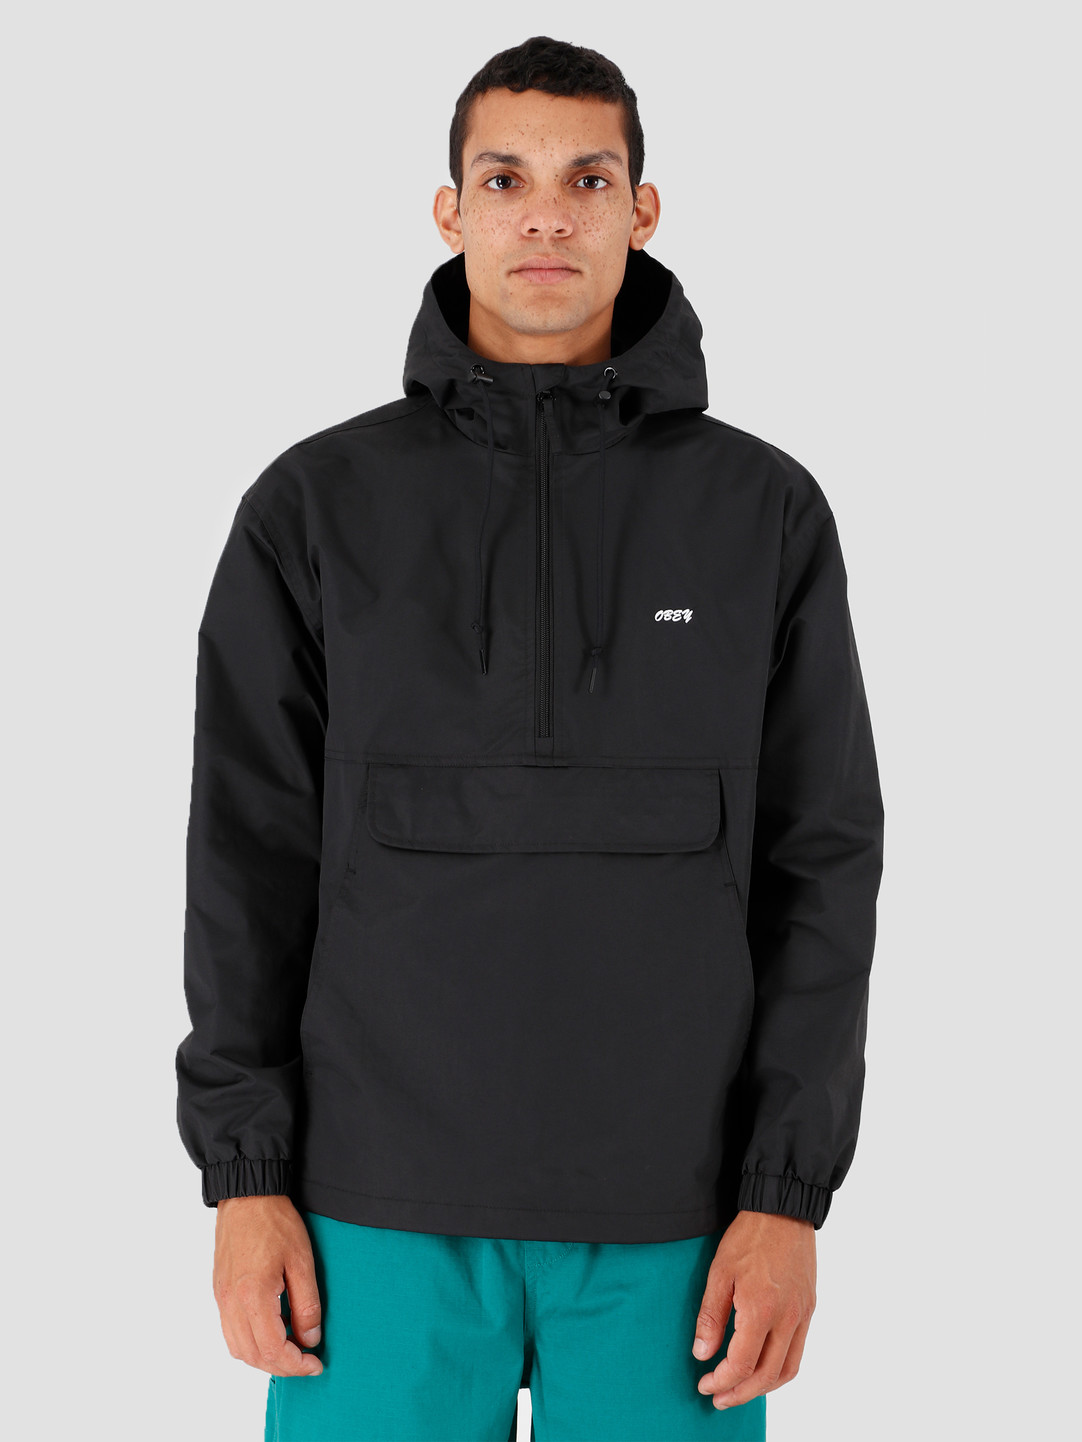 Obey Obey Recess Anorak Black 121800375-BLK